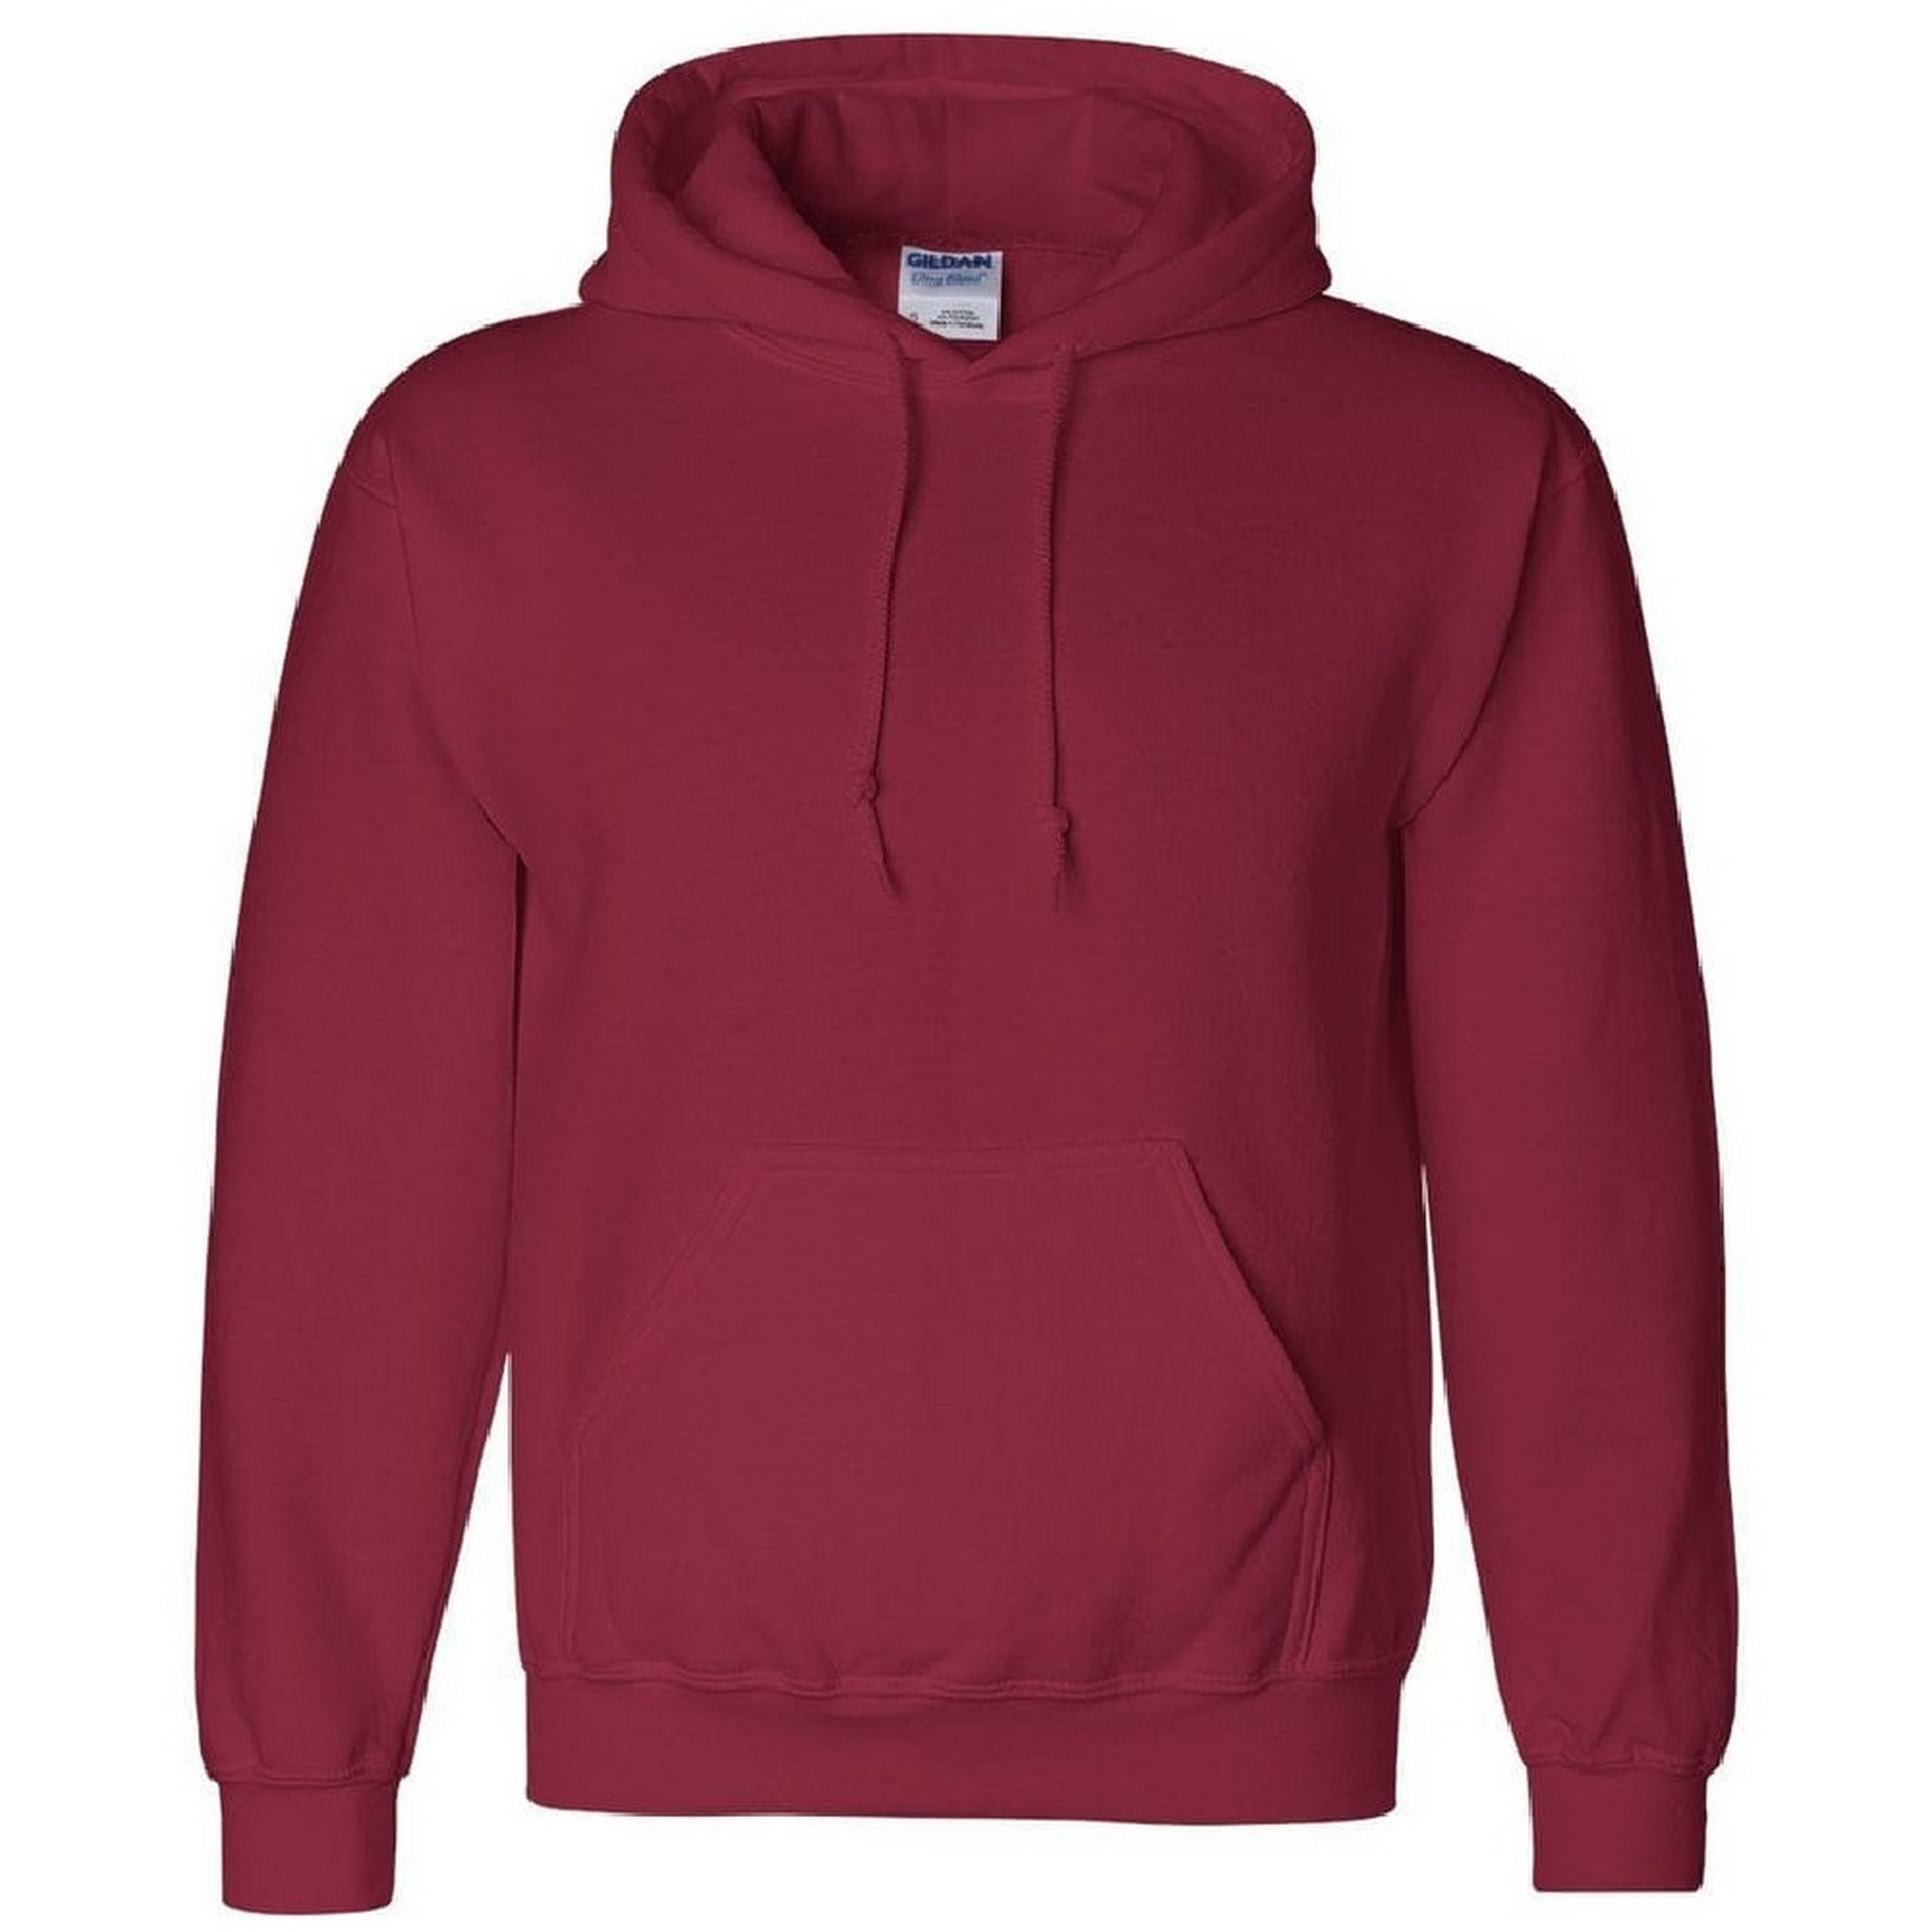 Hooded Pullover with 1/4 Zipper. Full-Zip Hoodie. Thermal Lined Hoodie. The famous